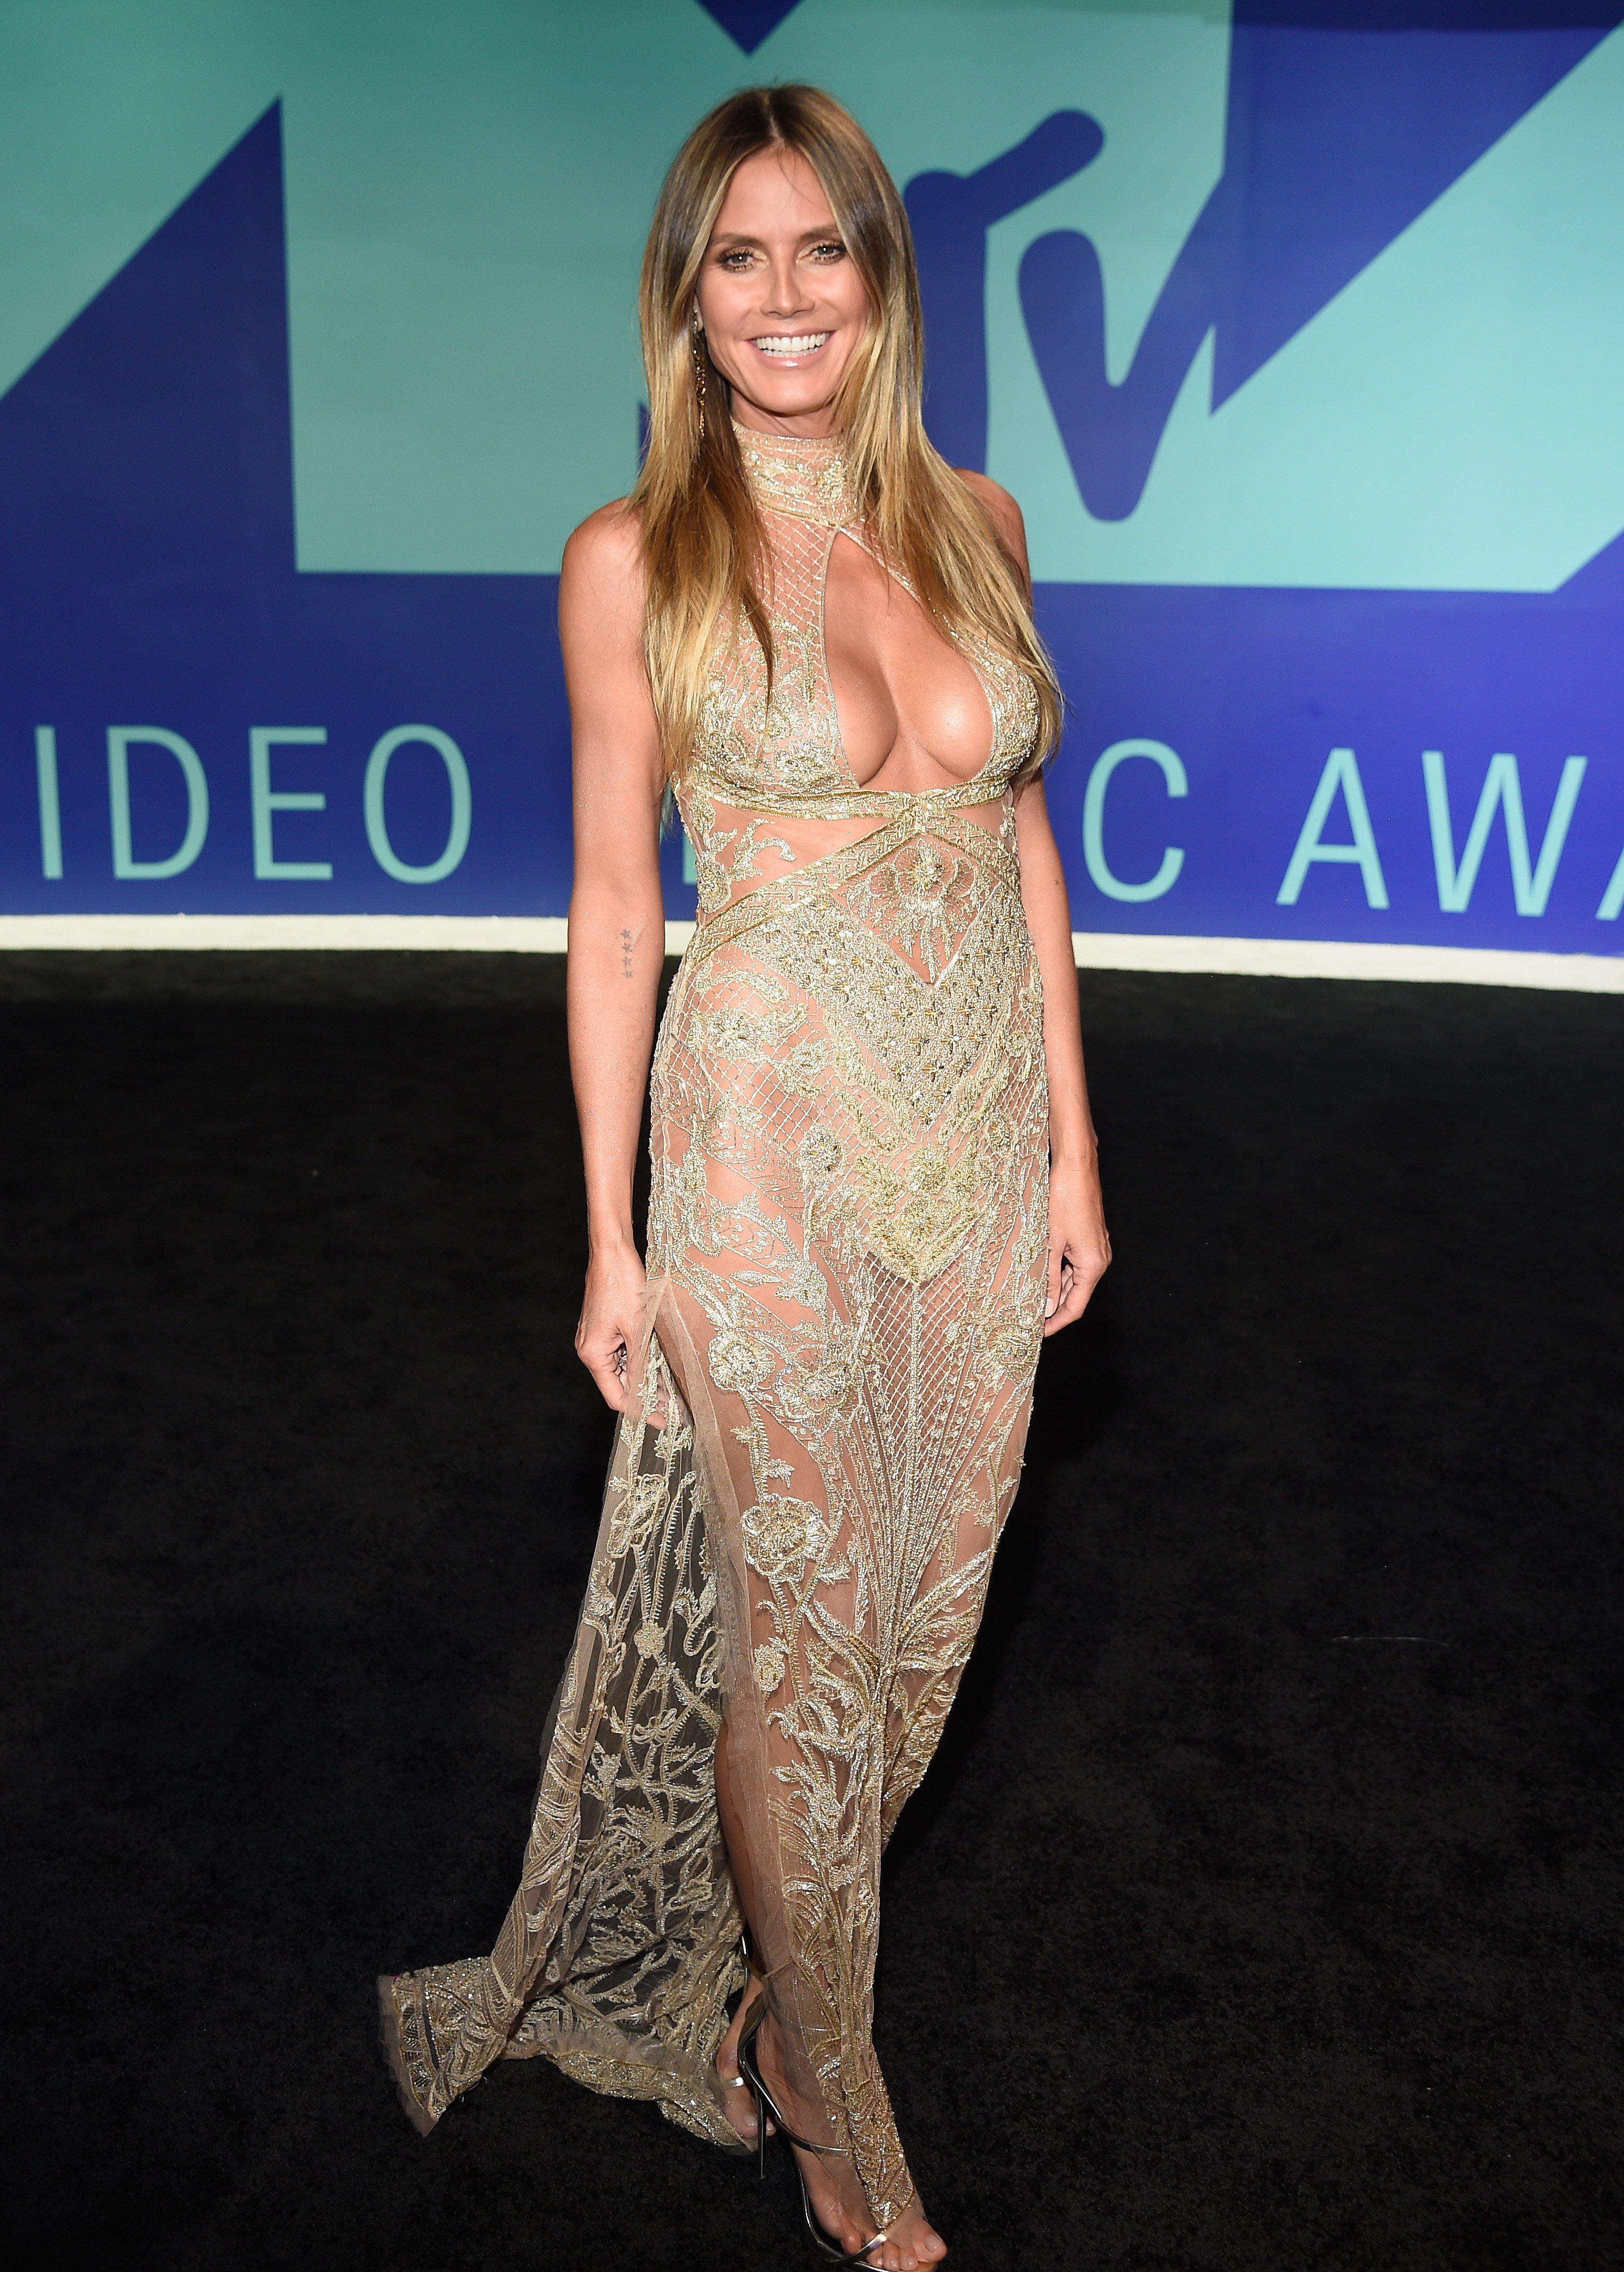 The Best And Worst Of The Vmas 9style